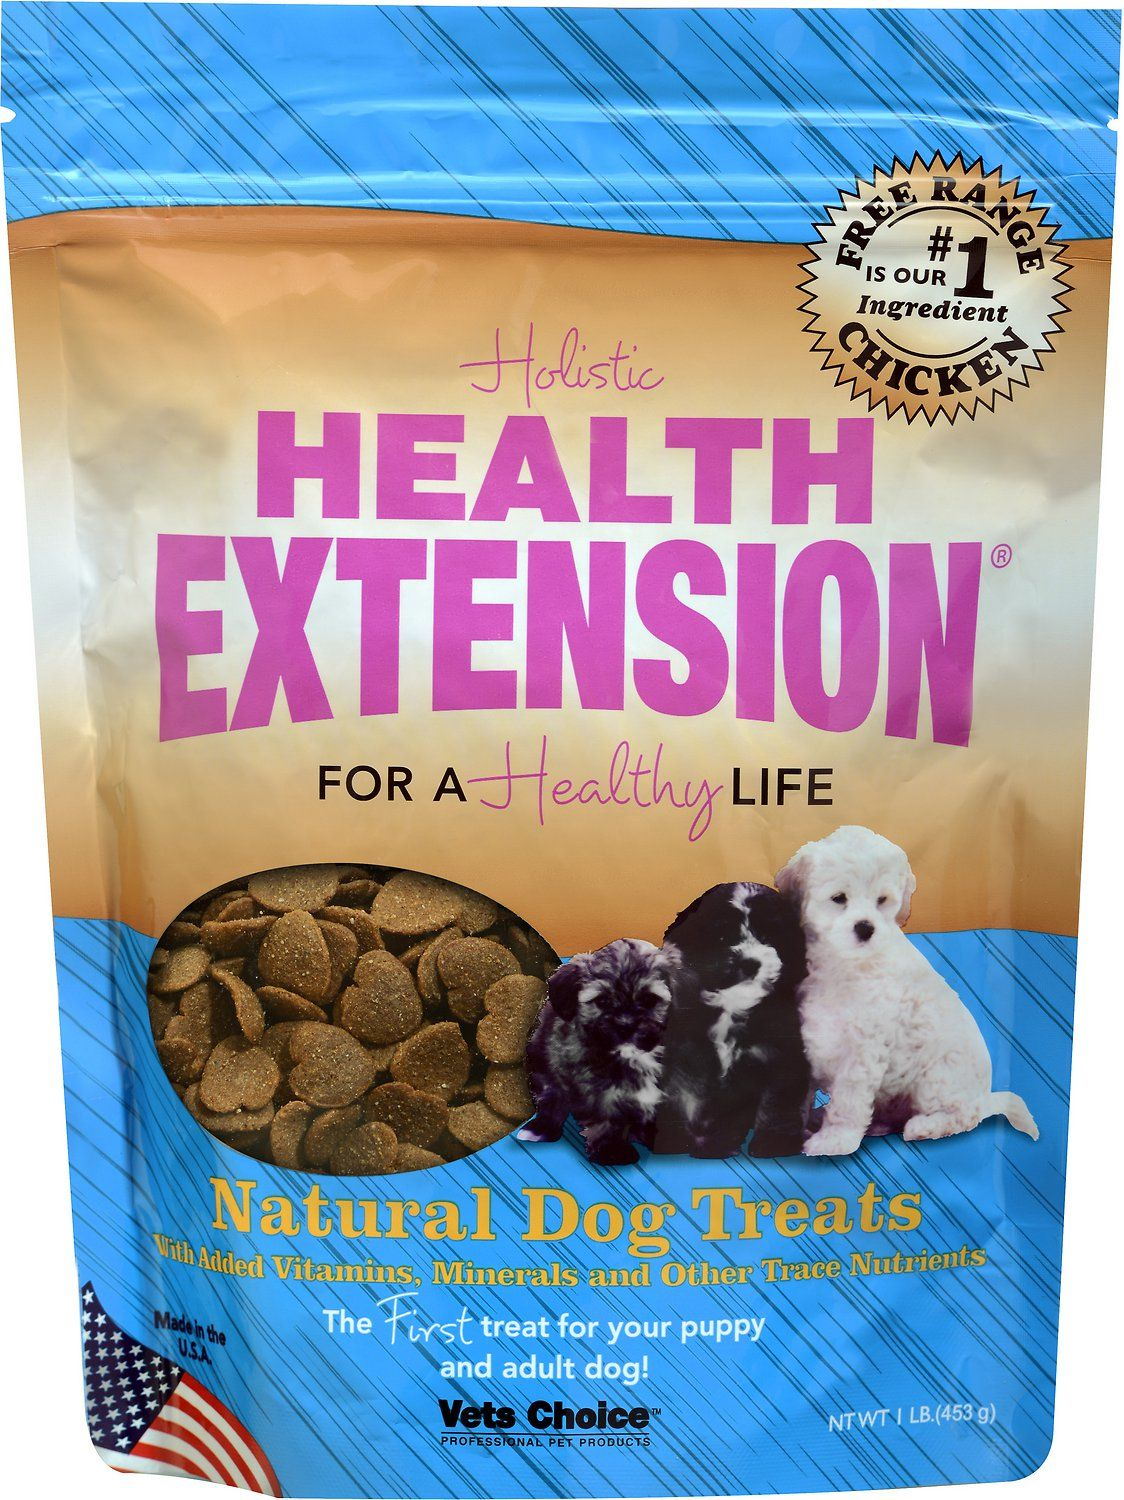 Delivering Pet Happiness By Conveniently Shipping 500 Brands Of Pet Food And Stuff For Free While Ensuring At Ri Natural Dog Treats Dog Treats Can Dogs Eat